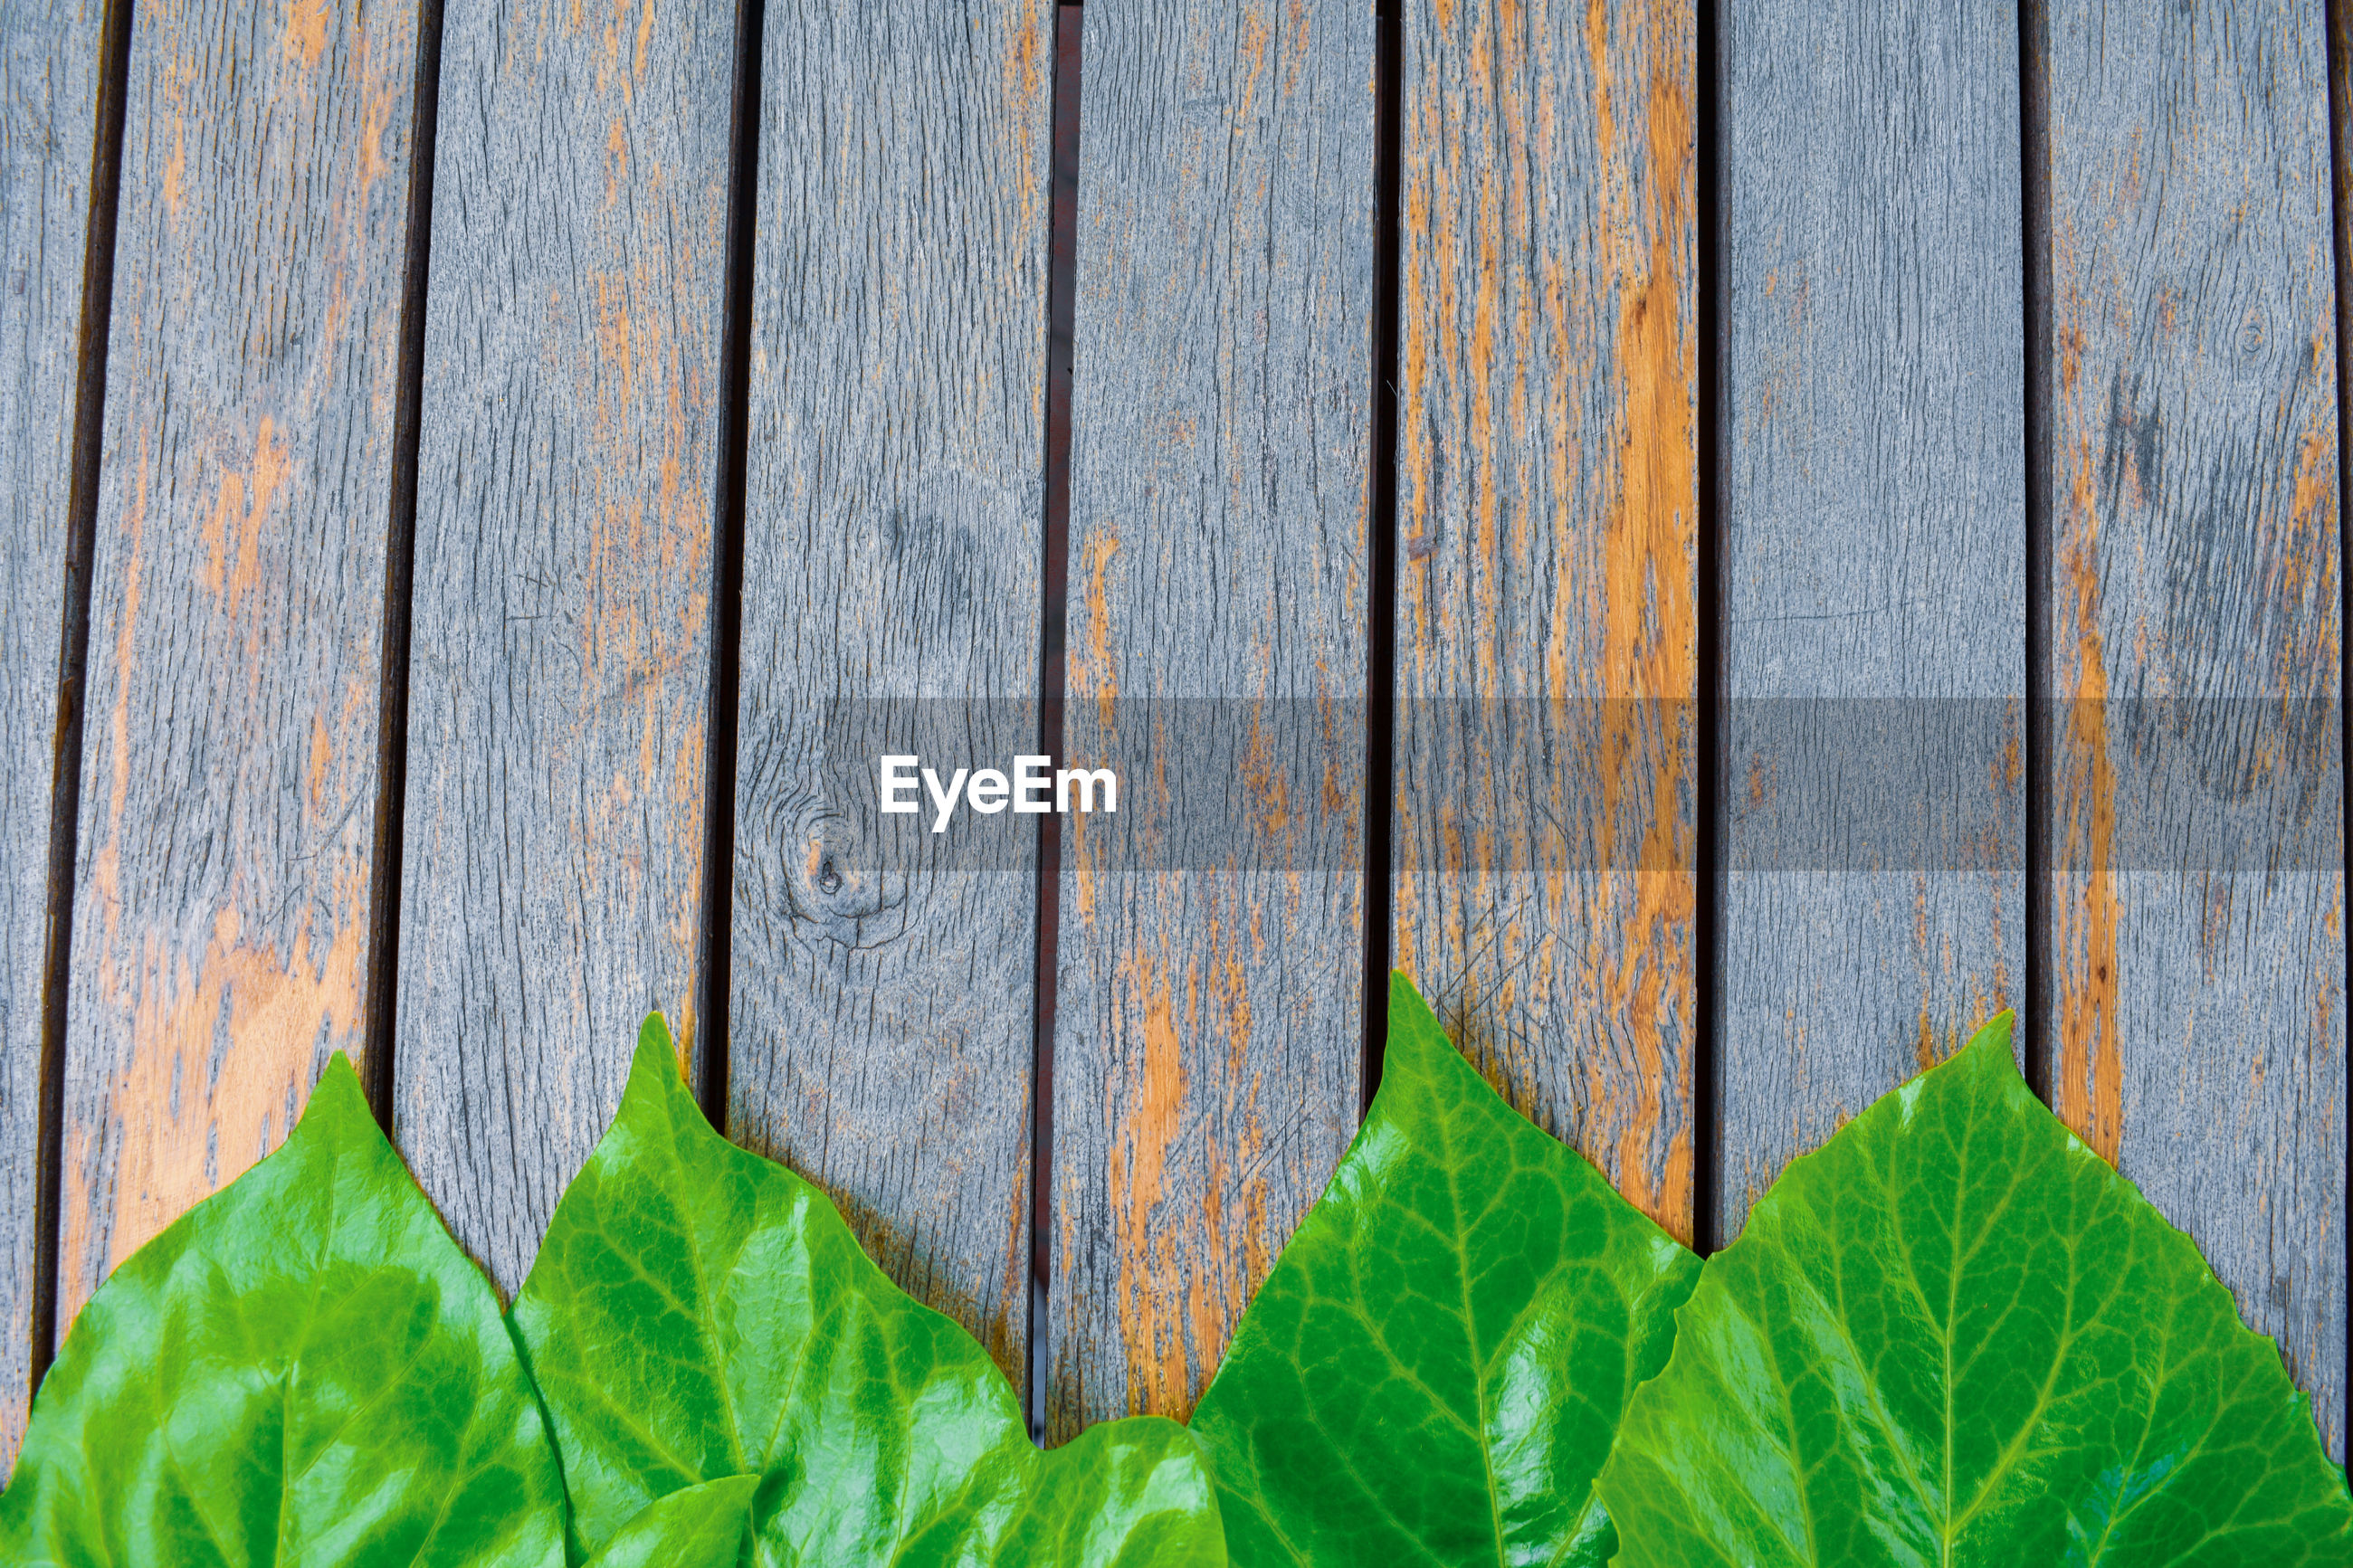 High angle view of leaves on wooden wall